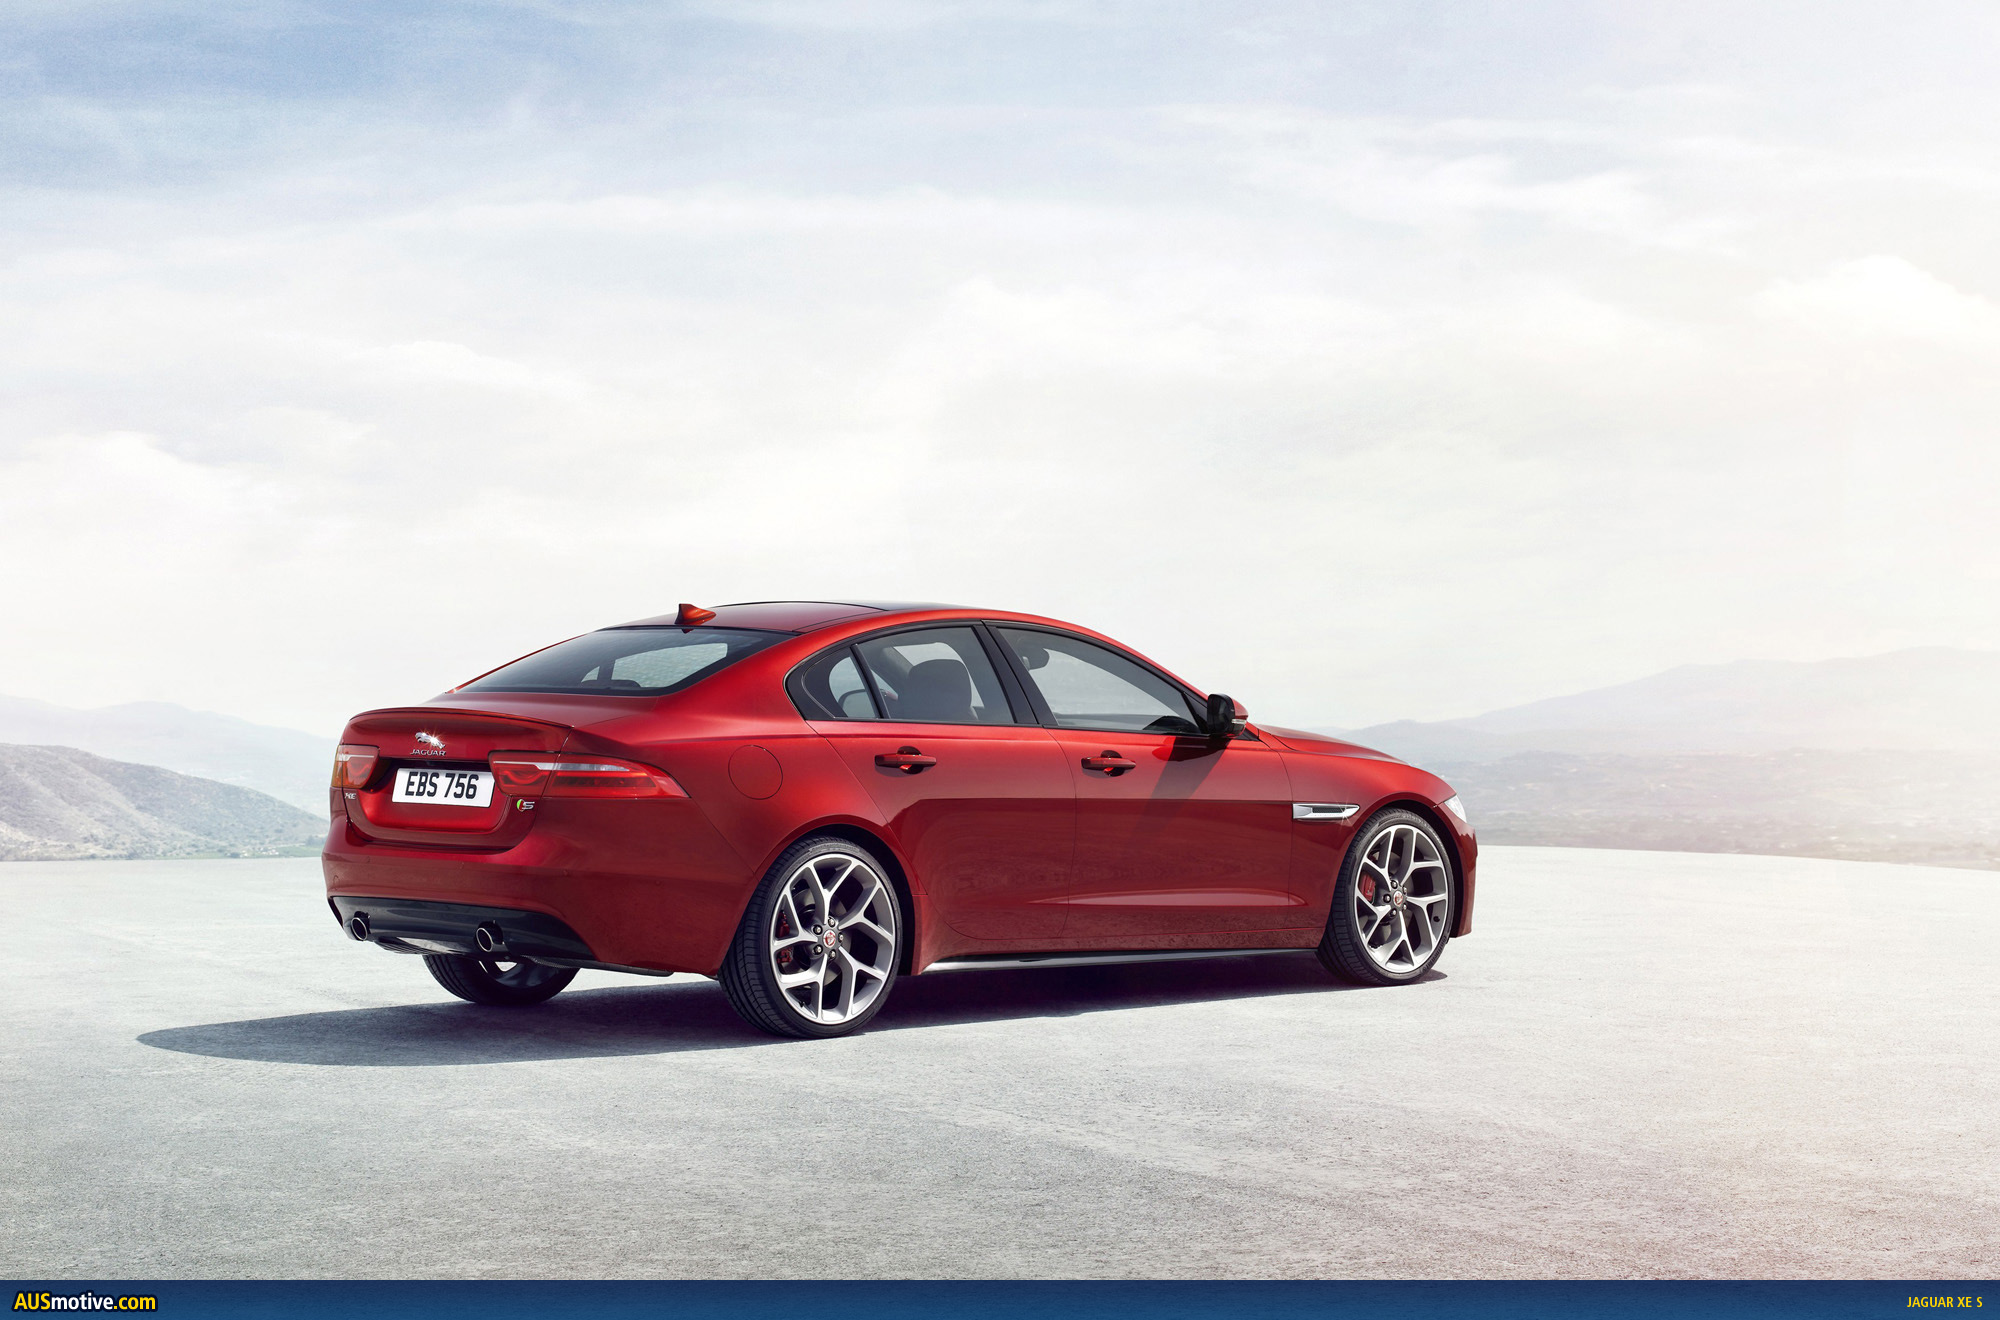 2019 Jaguar XE S photo - 1